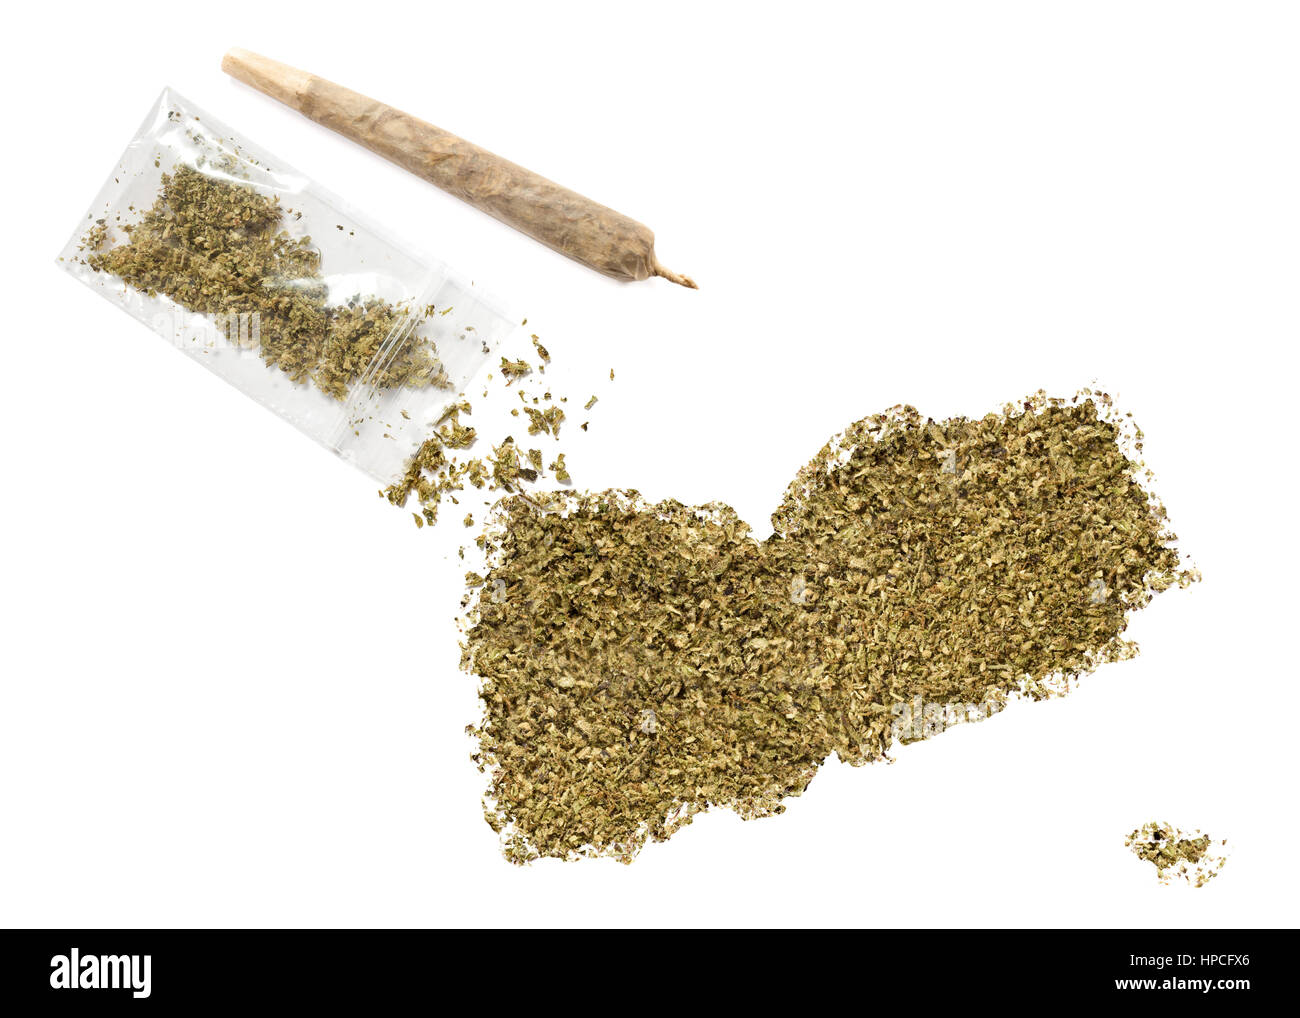 Grinded weed shaped as Yemen and a joint.(series) Stock Photo